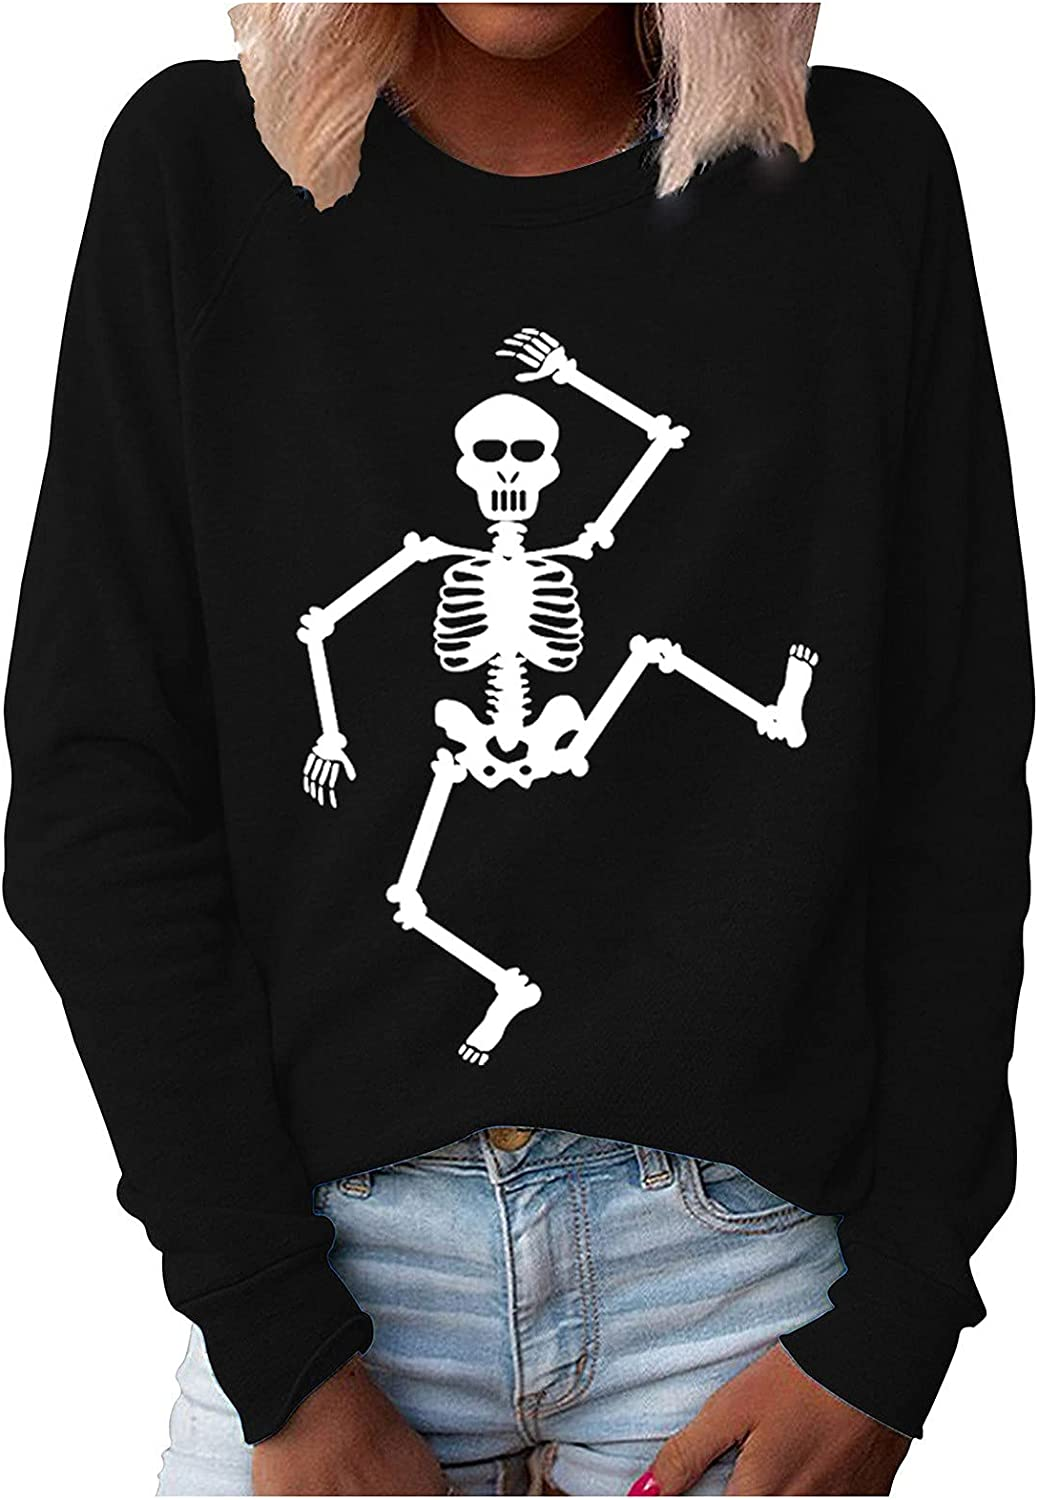 Bravetoshop Halloween Graphic Sweatshirts for Women Crewneck Loose Fit Casual Long Sleeve Cute Skeleton Pullover Tops